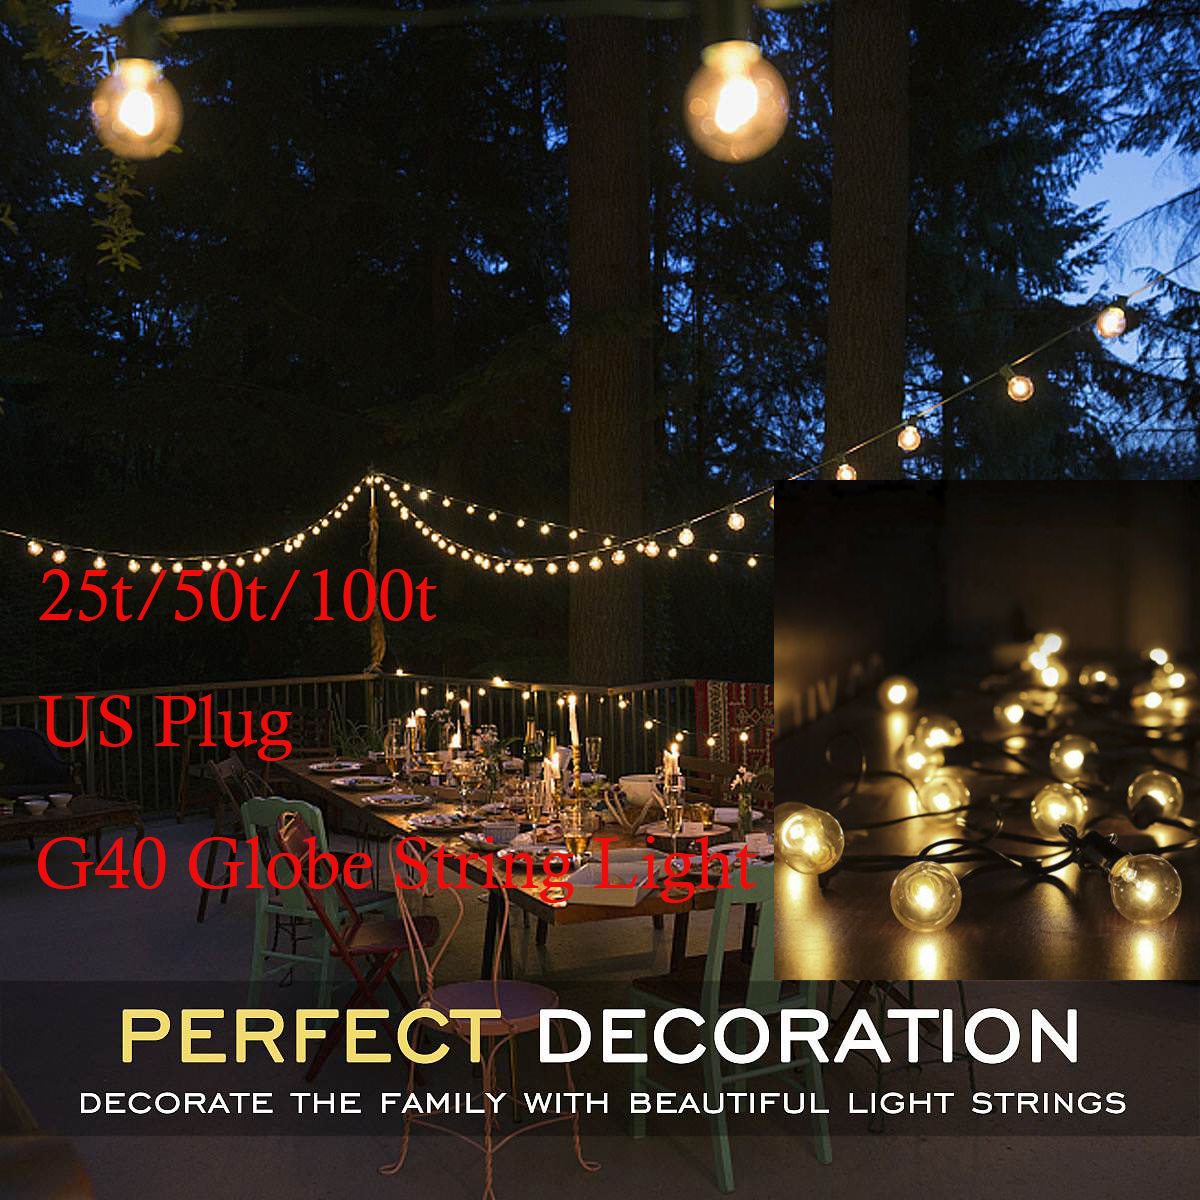 Outdoor Party Lights Details About 25 50 100 Bulbs G40 Filament Outdoor Patio Globe String Lights Party Light